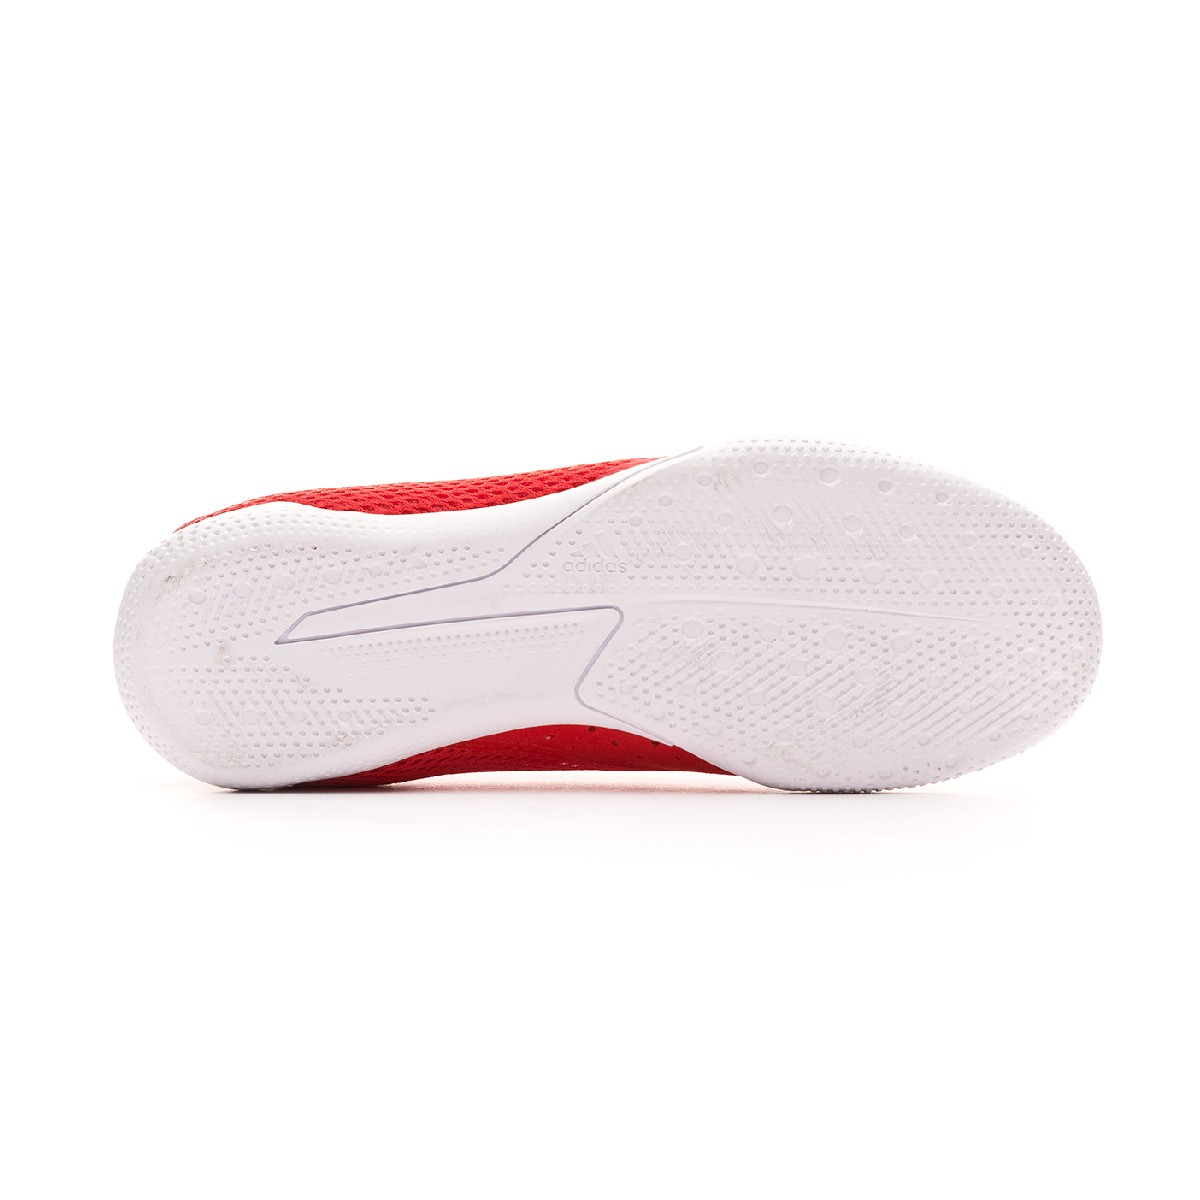 Chaussure de futsal adidas X Tango 18.3 IN enfant Active red